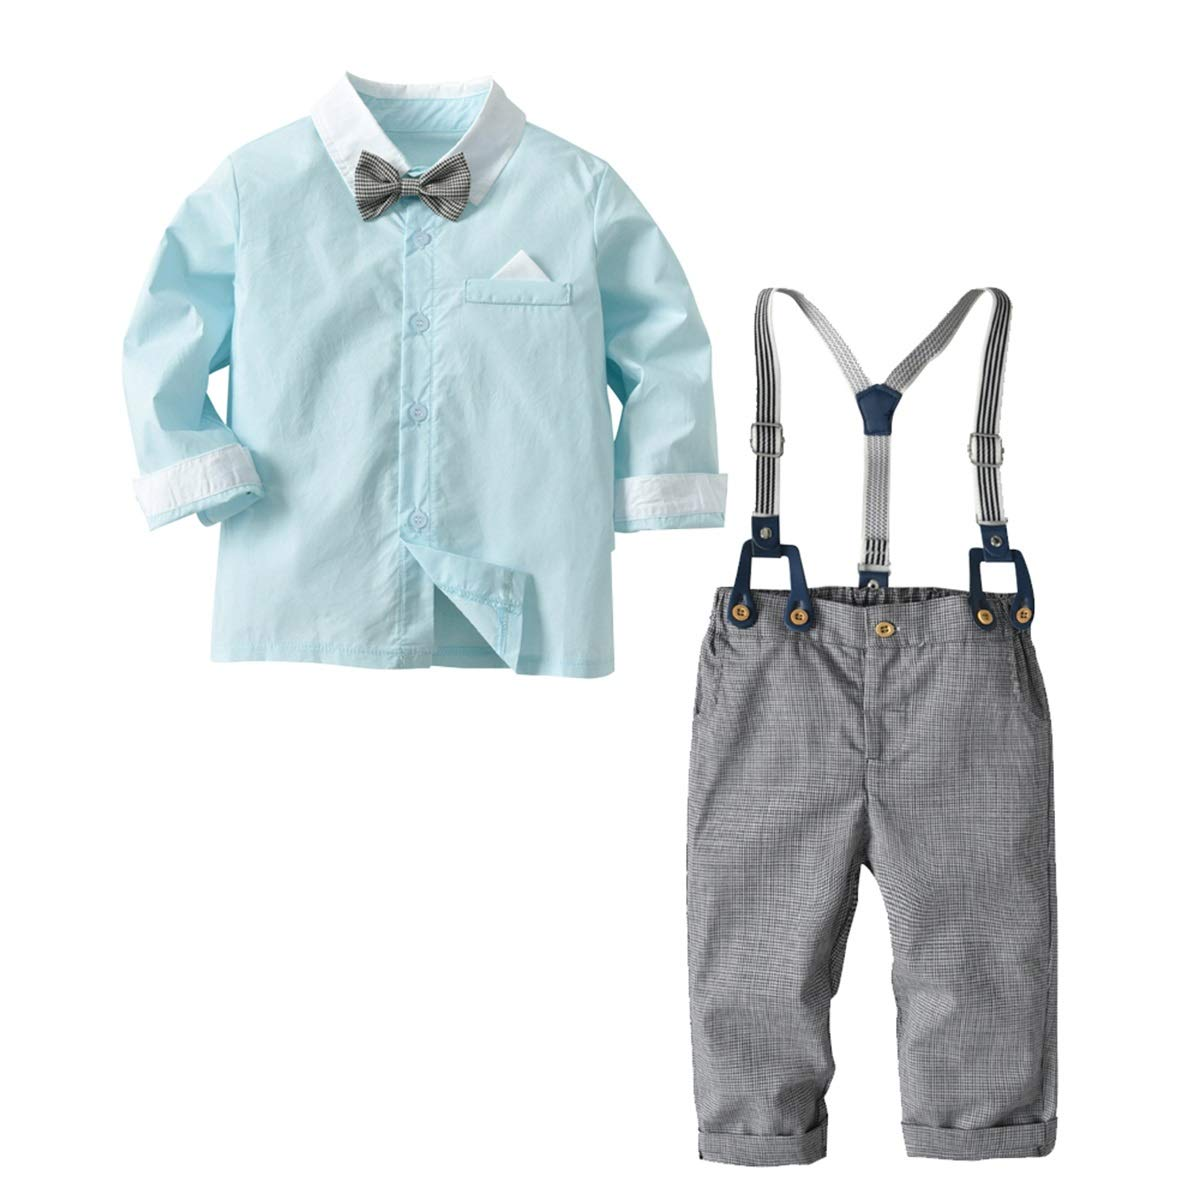 2-6Y Boys Gentleman Suit Long Sleeve Bow Tie Shirt+Suspender Pants Clothes Set Color : Pink, Size : 4-5Y